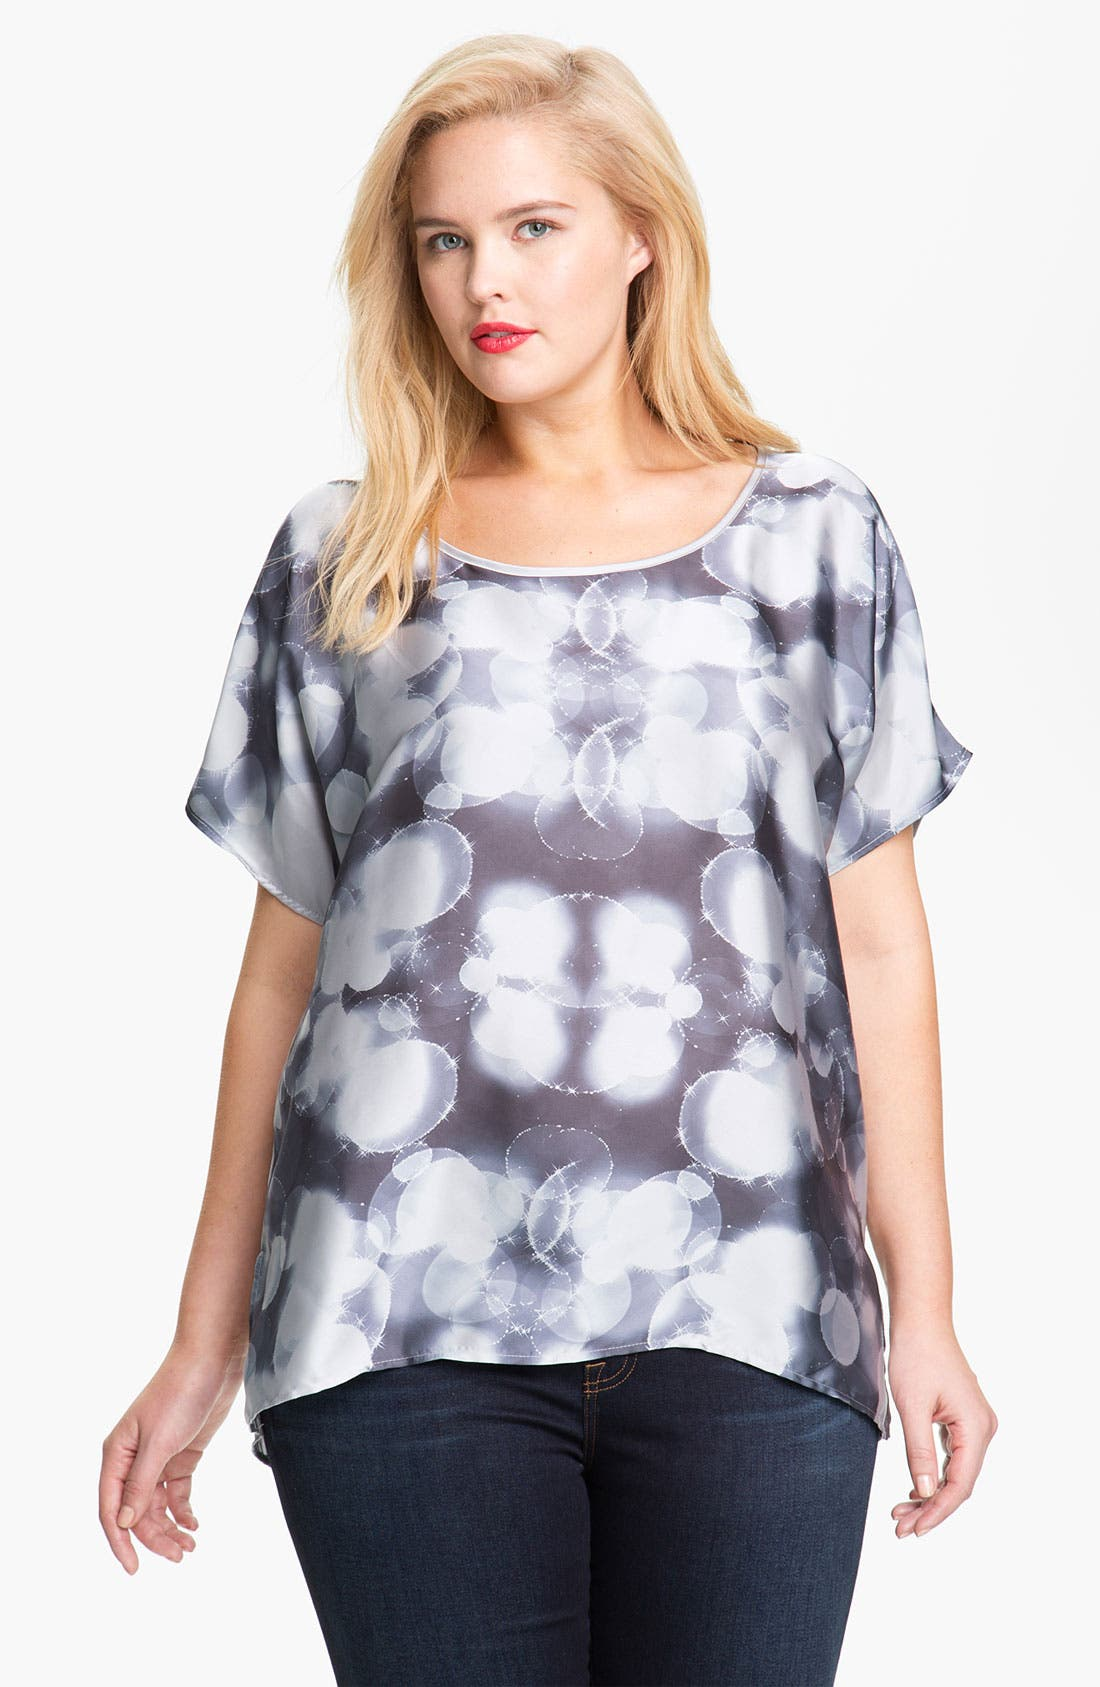 Alternate Image 1 Selected - Pleione Graphic Print Asymmetrical Top (Plus Size)